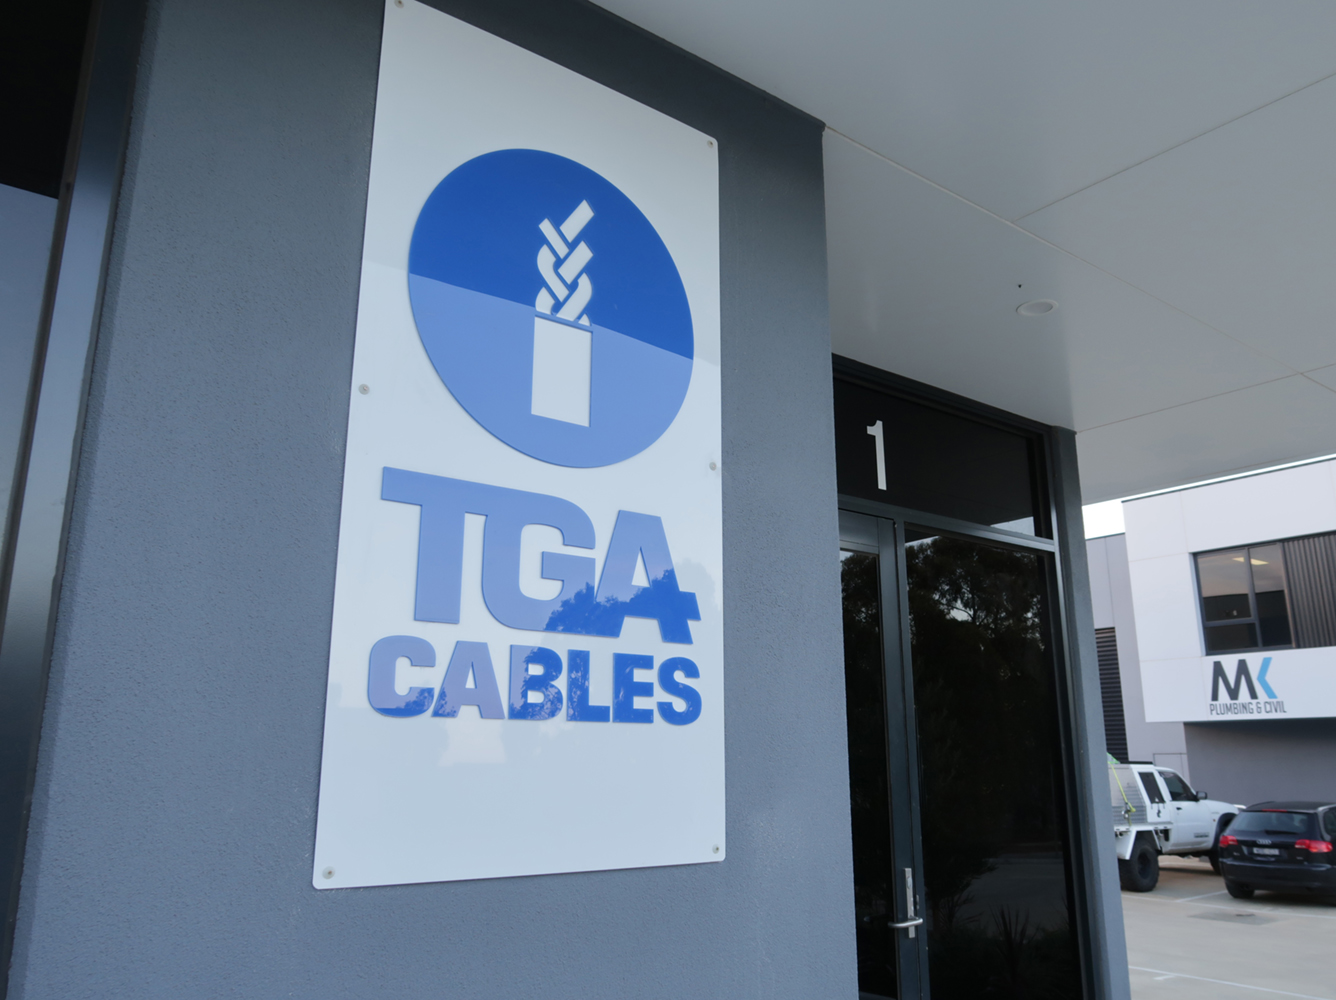 TGA Cables - Laser Cut 3D Sign for Building